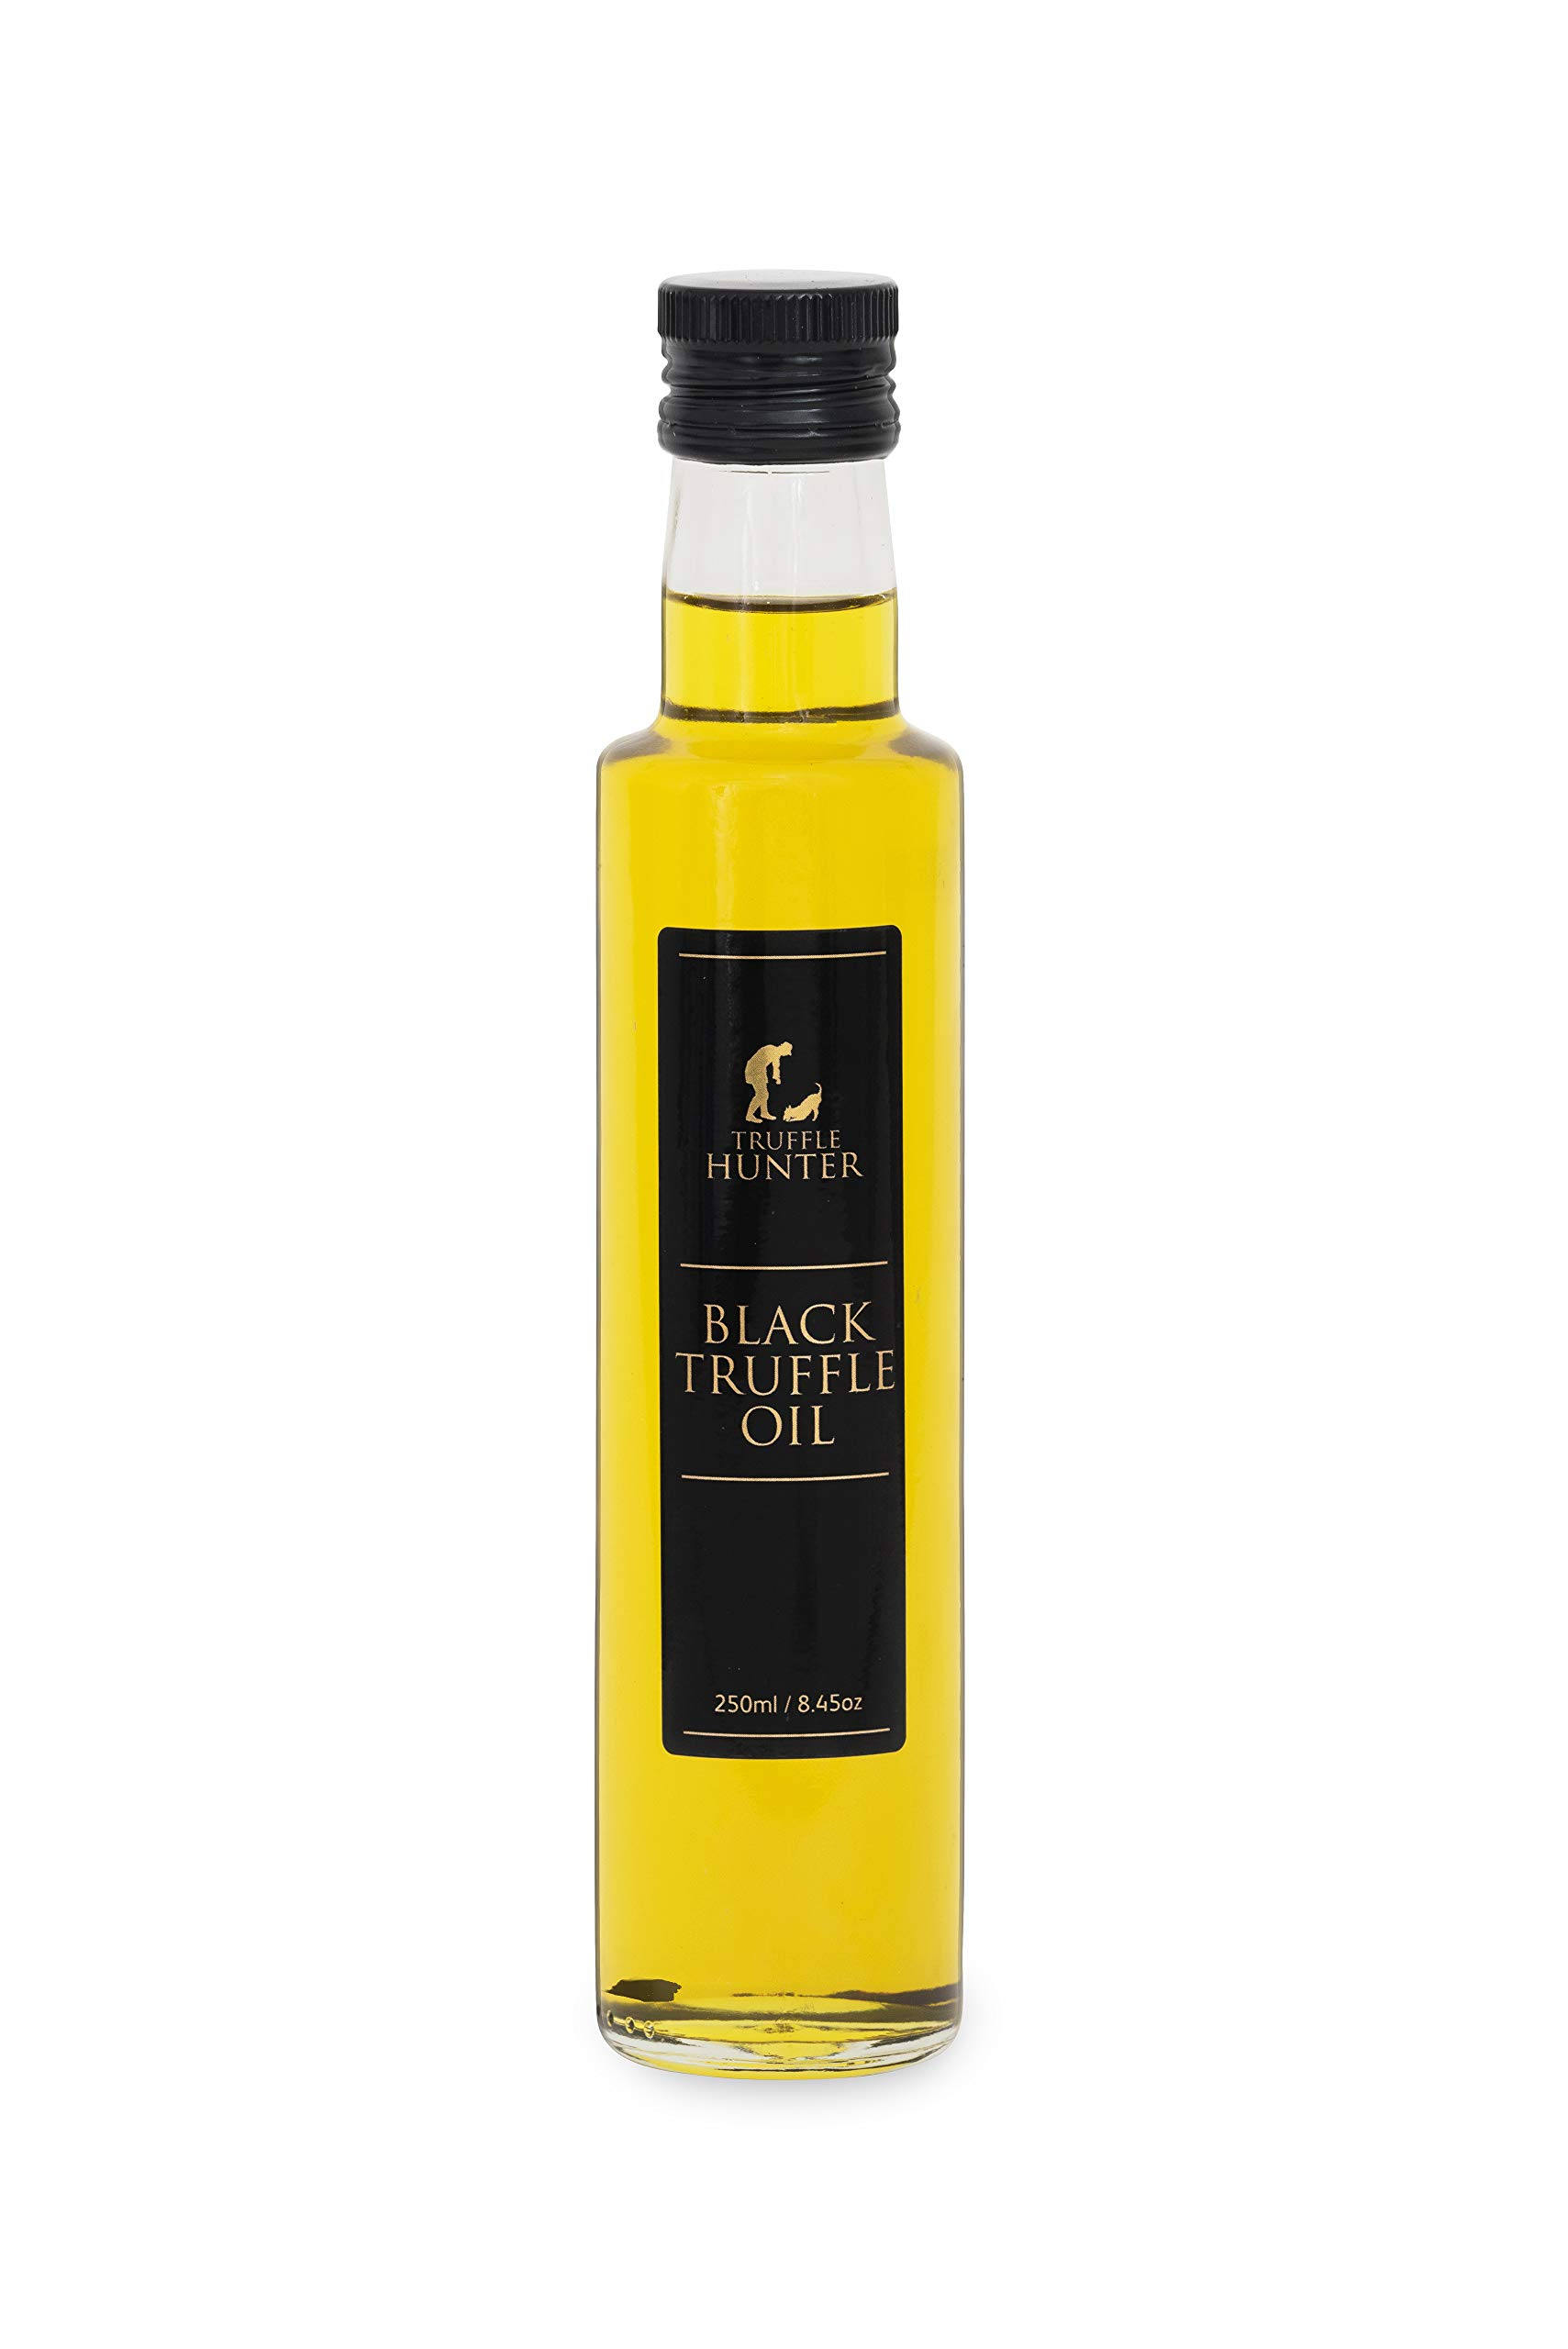 TruffleHunter Black Truffle Oil (8.45 Oz) [Double Concentrated] Extra Virgin Olive Oil Salad Dressing Seasoning Gourmet Food Condiments - Vegan, Kosher, Vegetarian and Gluten Free by TruffleHunter